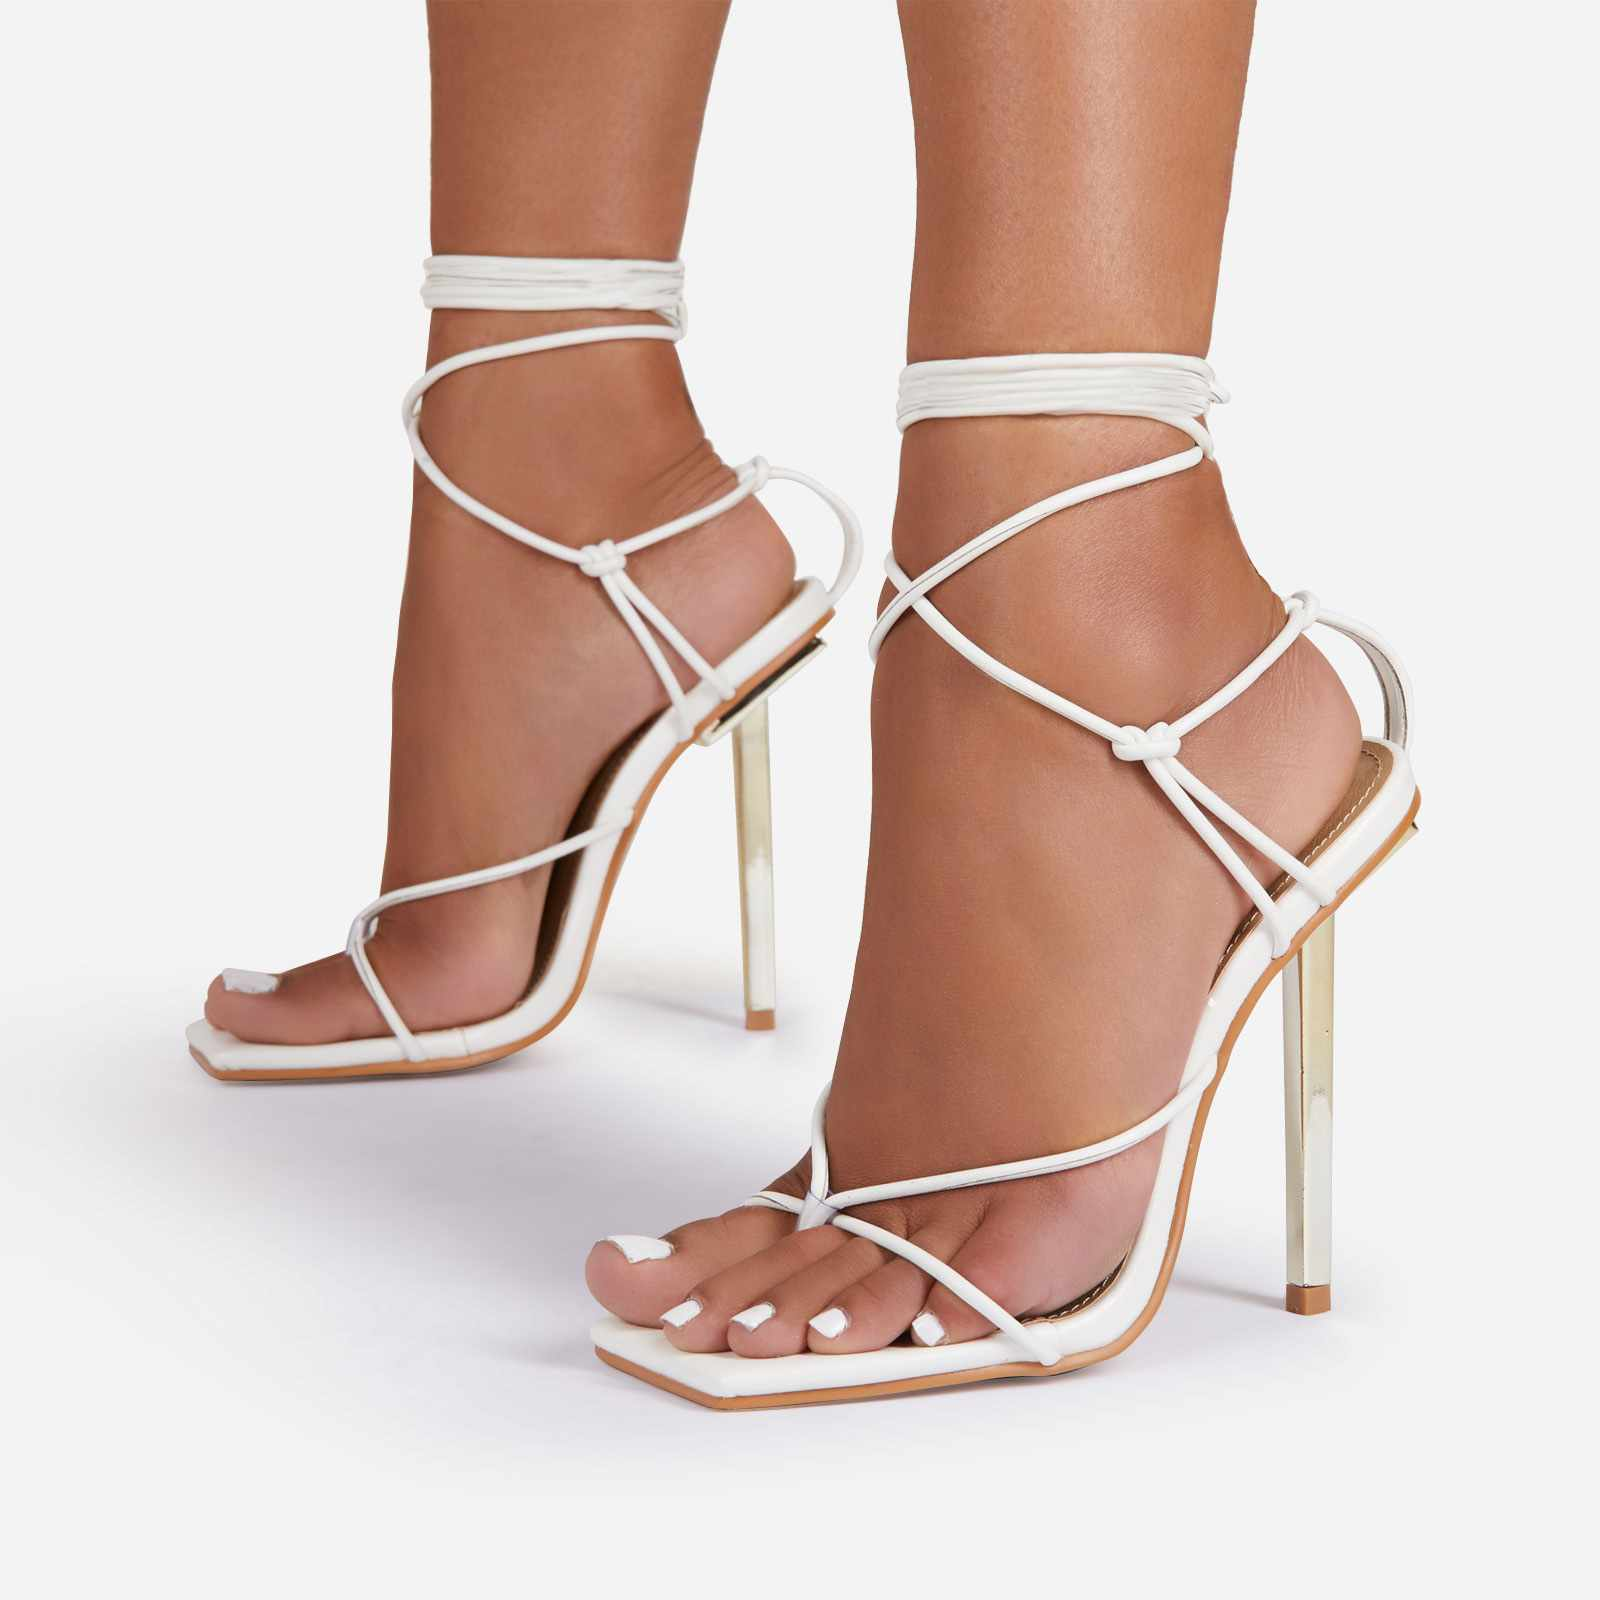 Raven Knotted Detail Lace Up Square Toe Metallic Heel In White Faux Leather